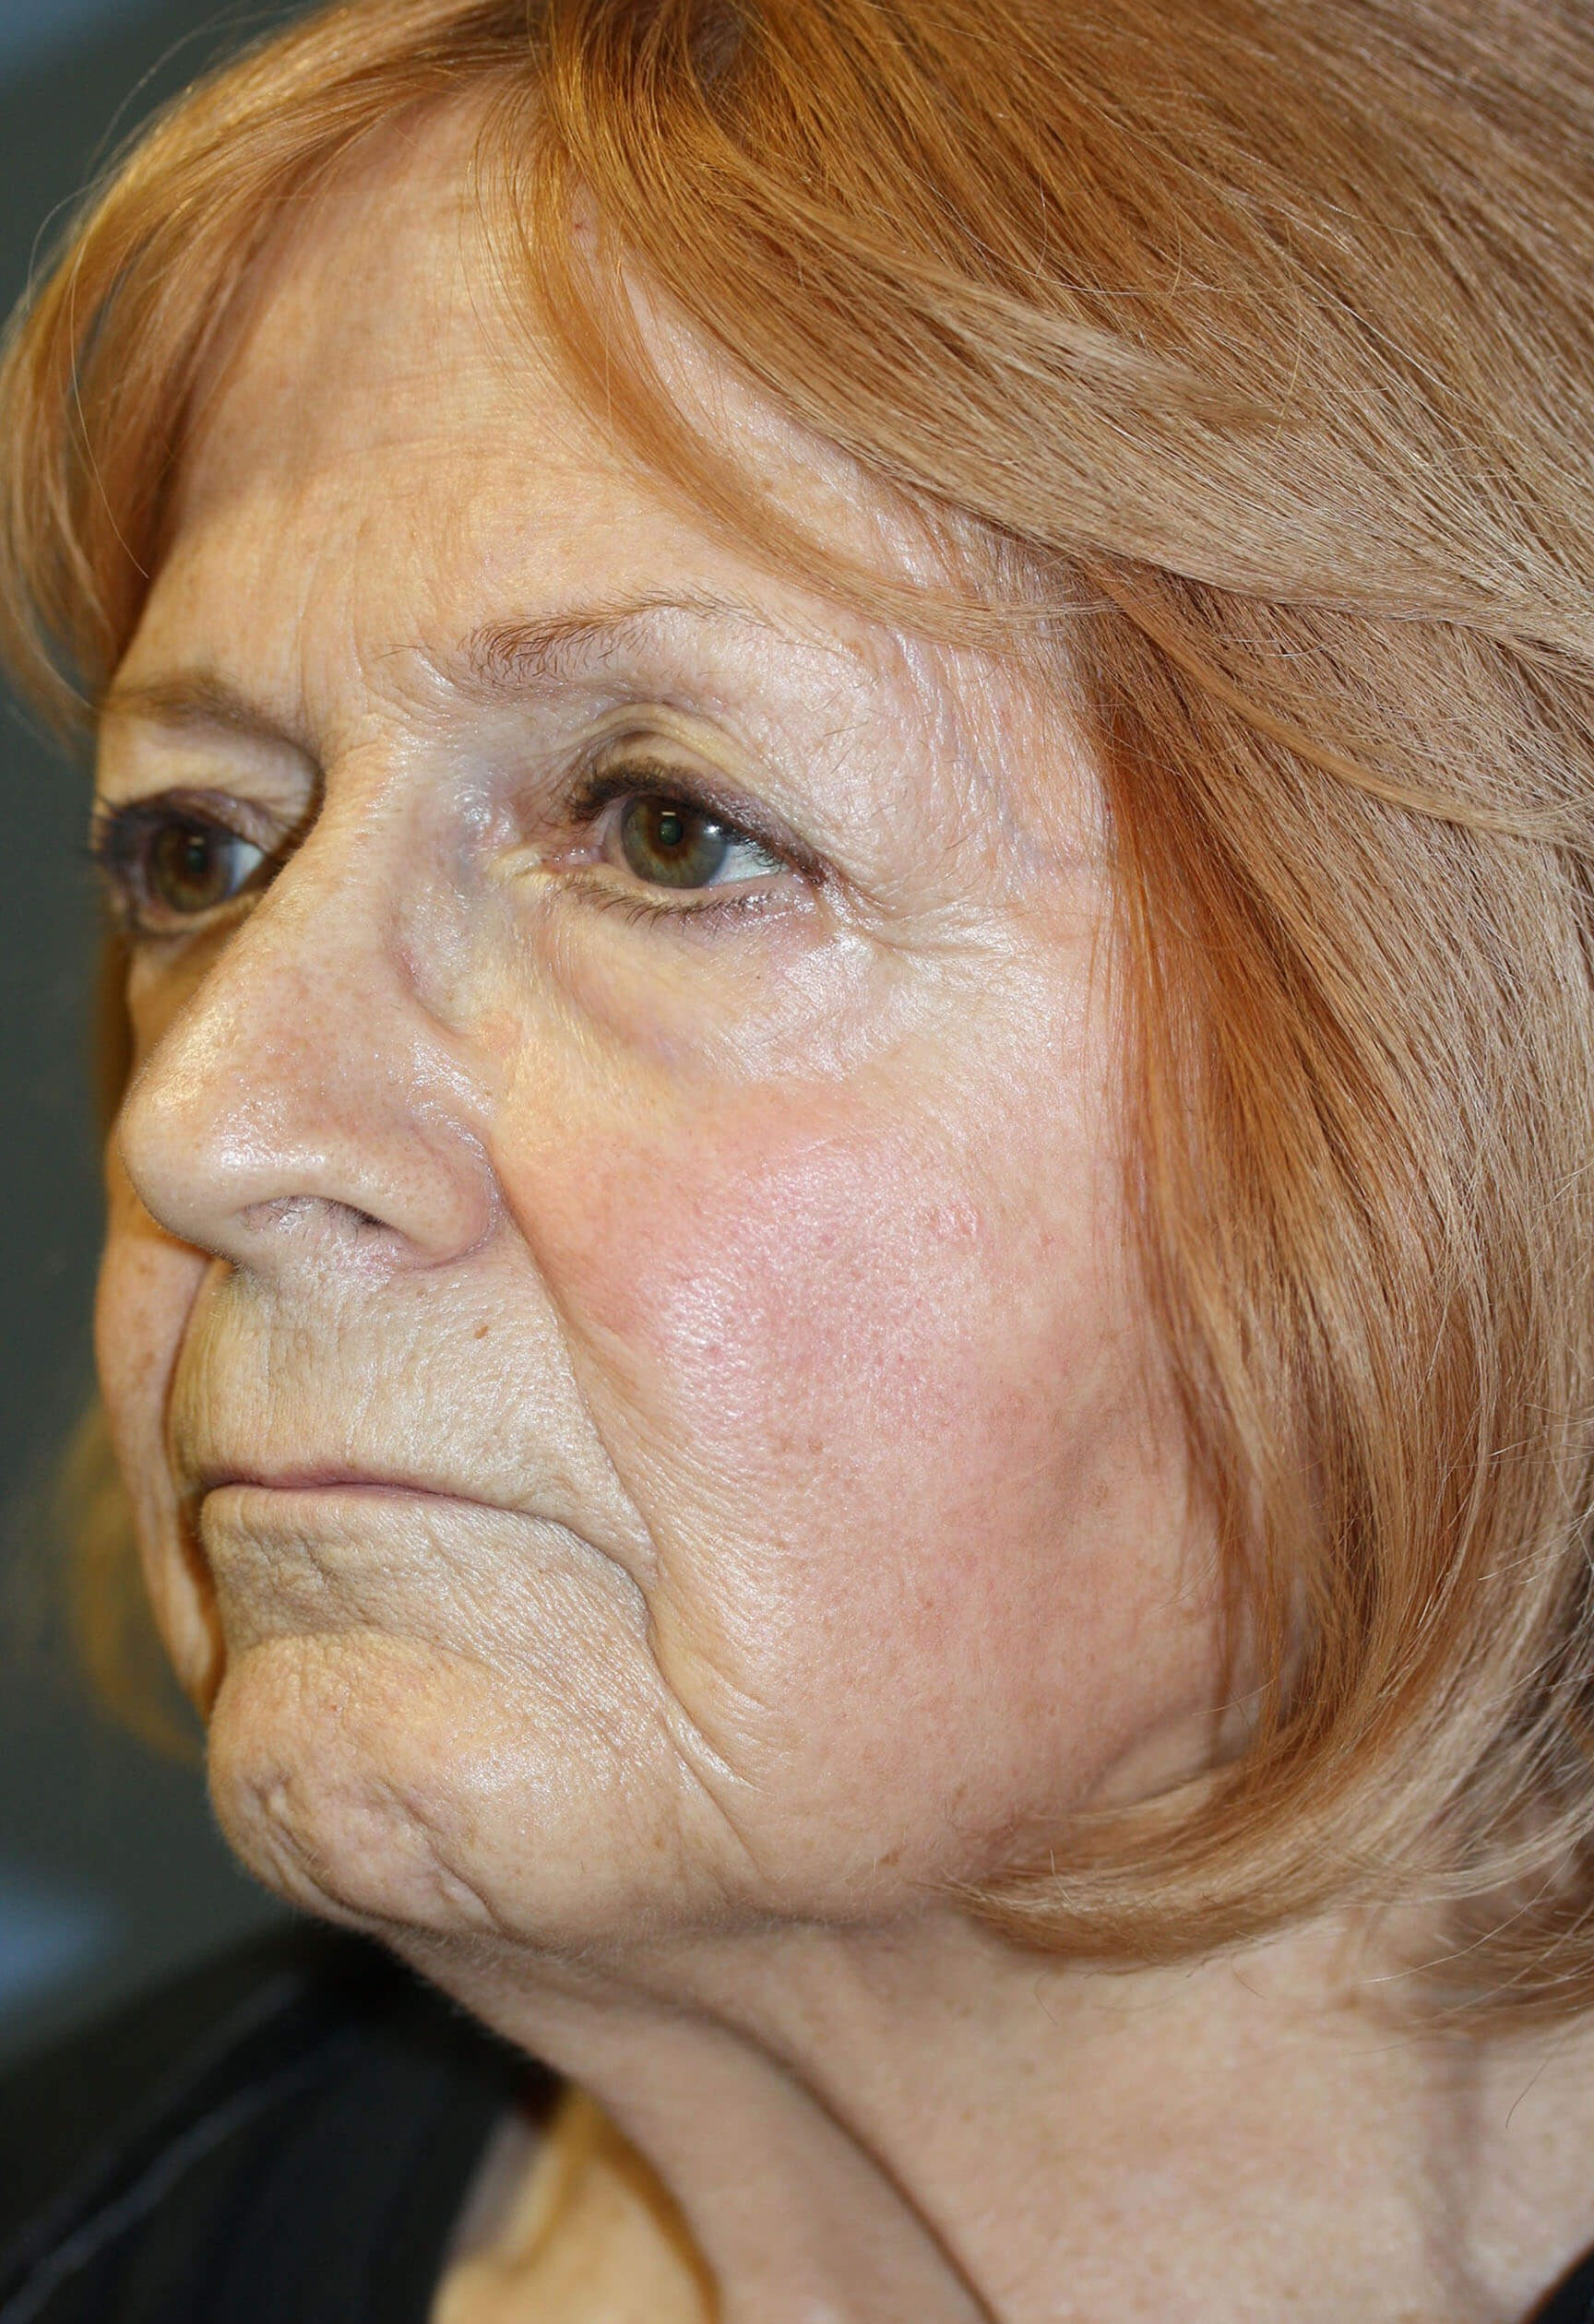 Profile Before and After Before Procedures